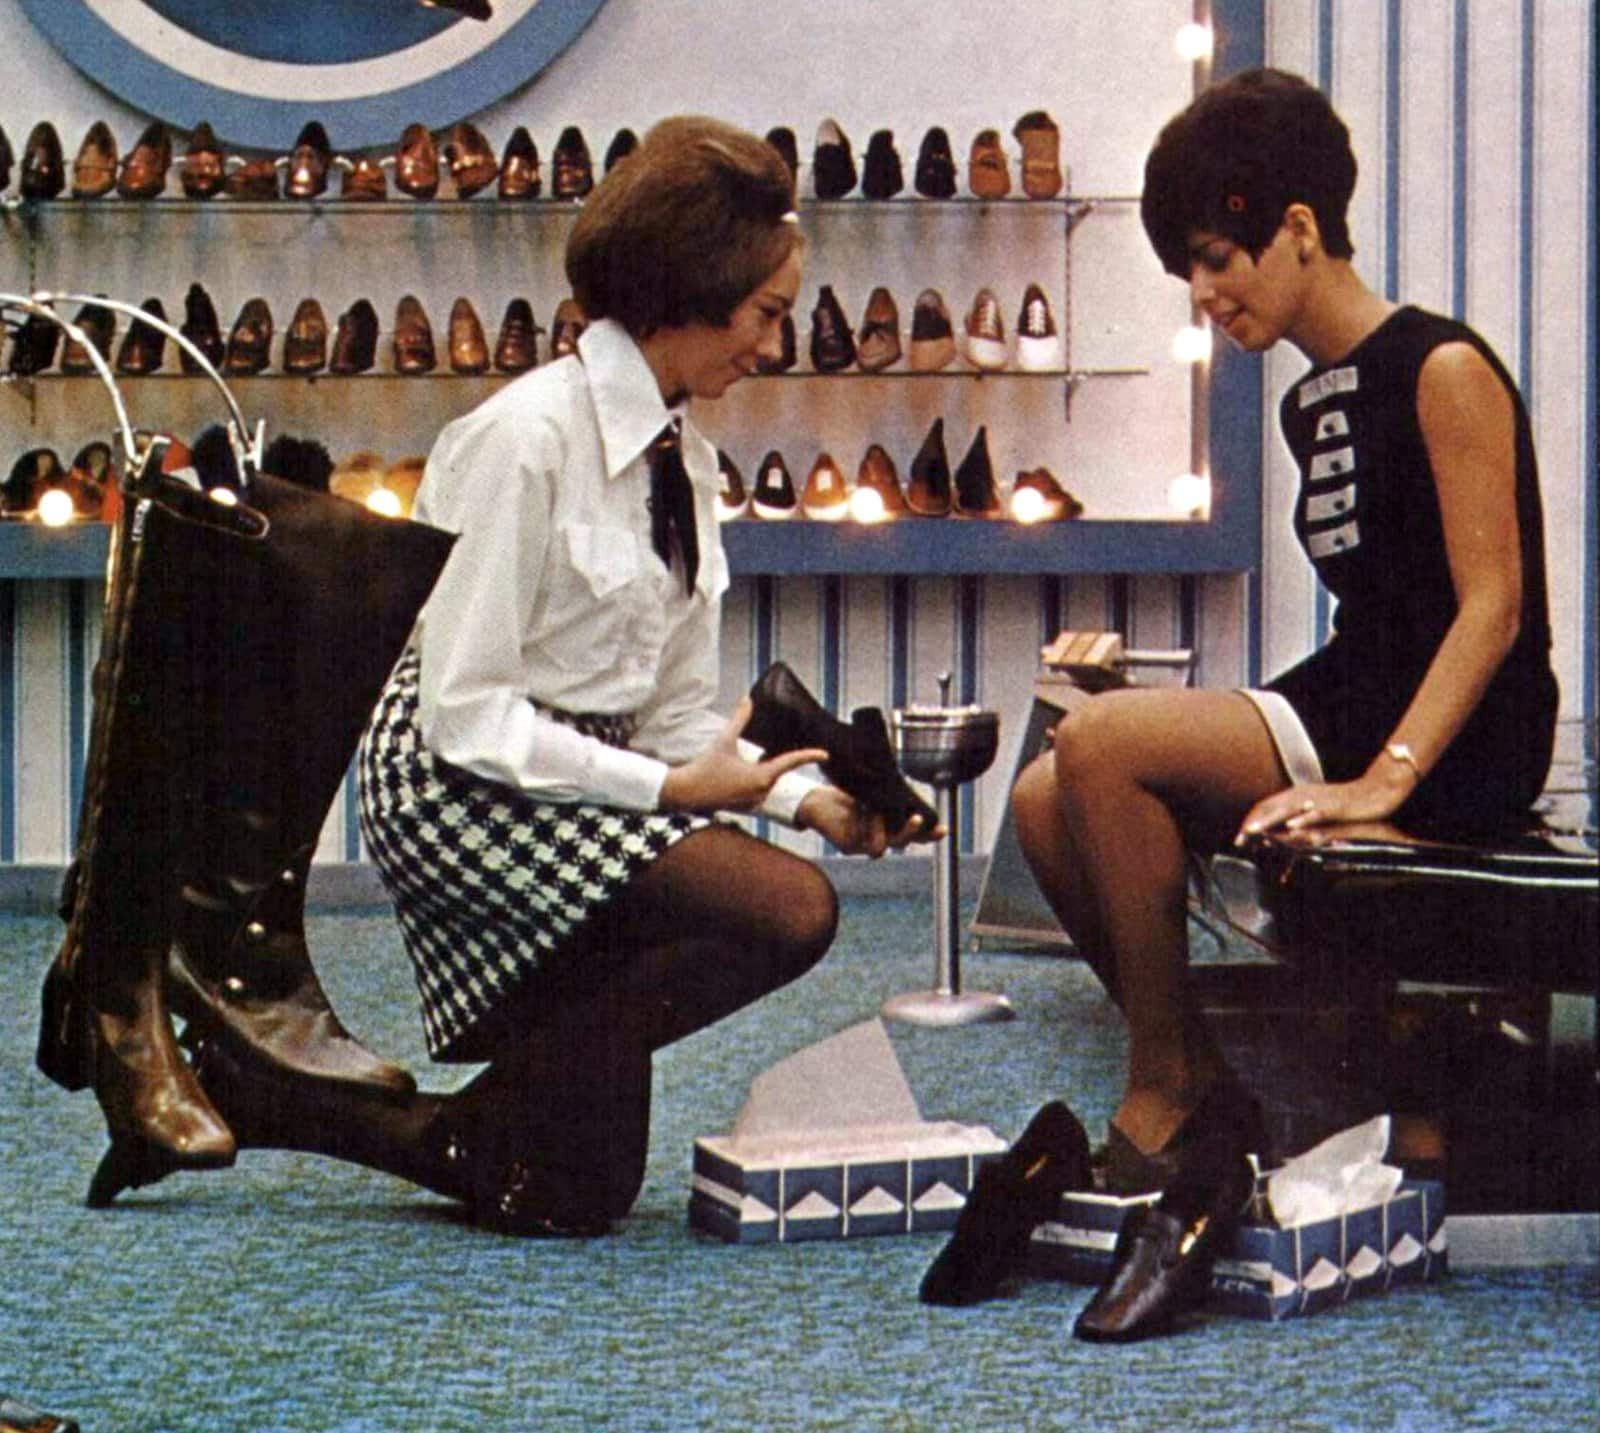 Stylish sixties woman trying on shoes (1968)